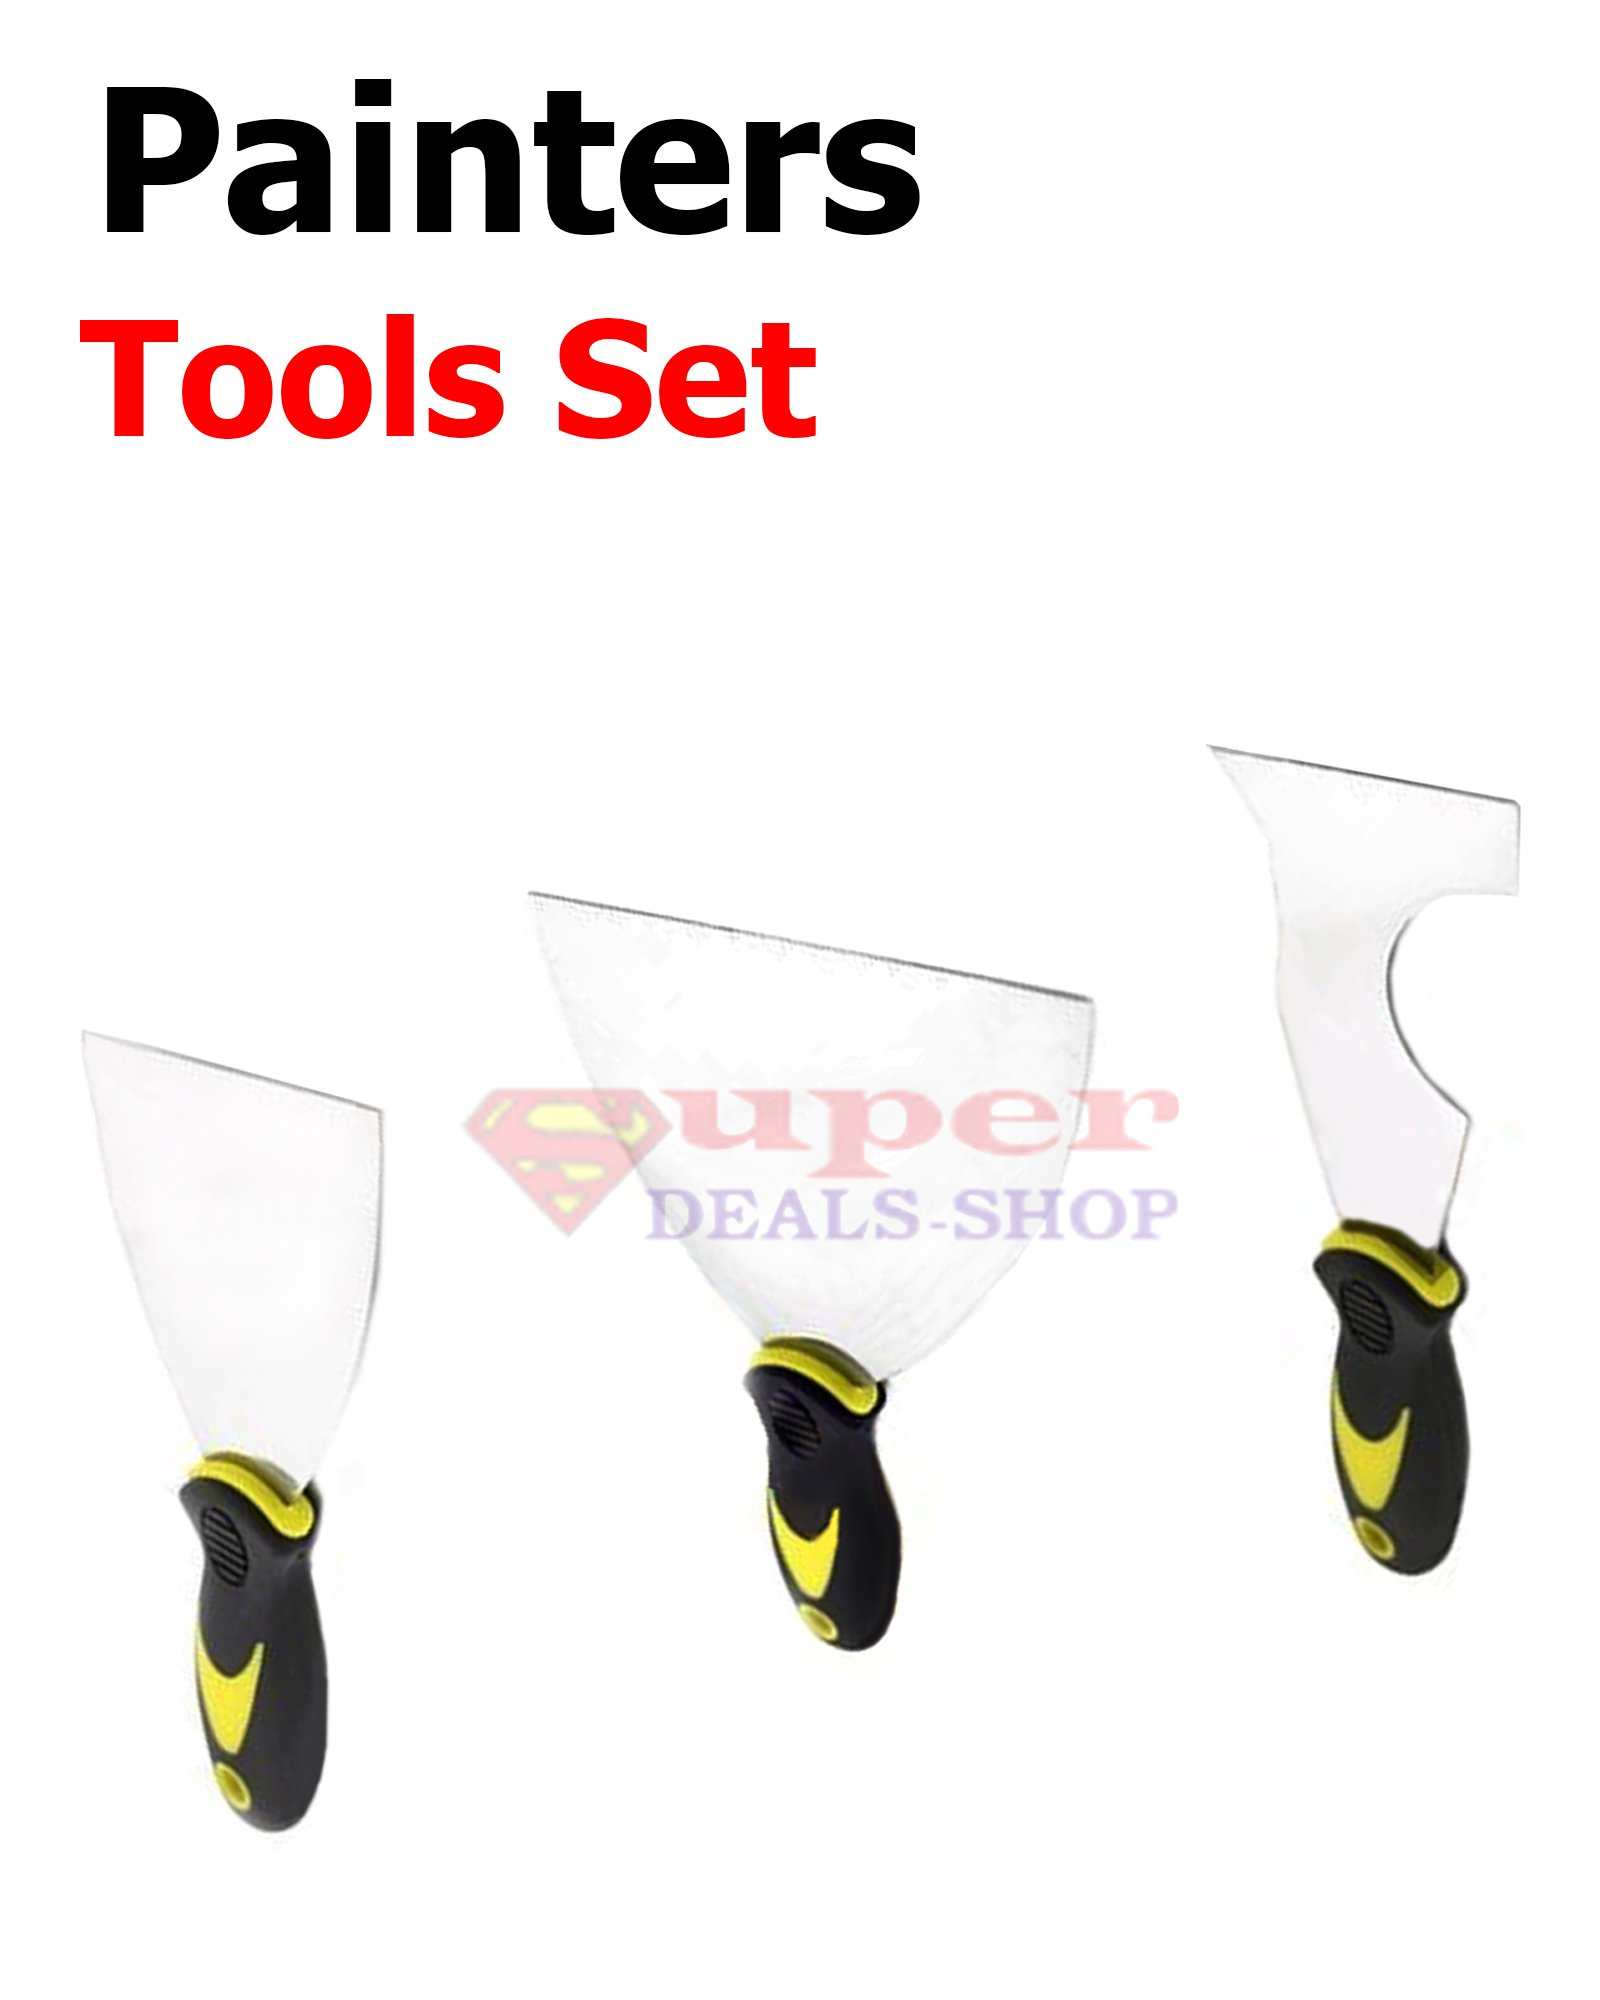 """3 Pcs Professional Painter Tool Set Stainless Steel Putty Knife Spreader / Remover / Scraper / Glazier Pocket Sized Wall Repair Multi Purpose 3"""" + 5""""+ 3"""" 5-in-1 Hand Tool Super-Deals-Shop"""